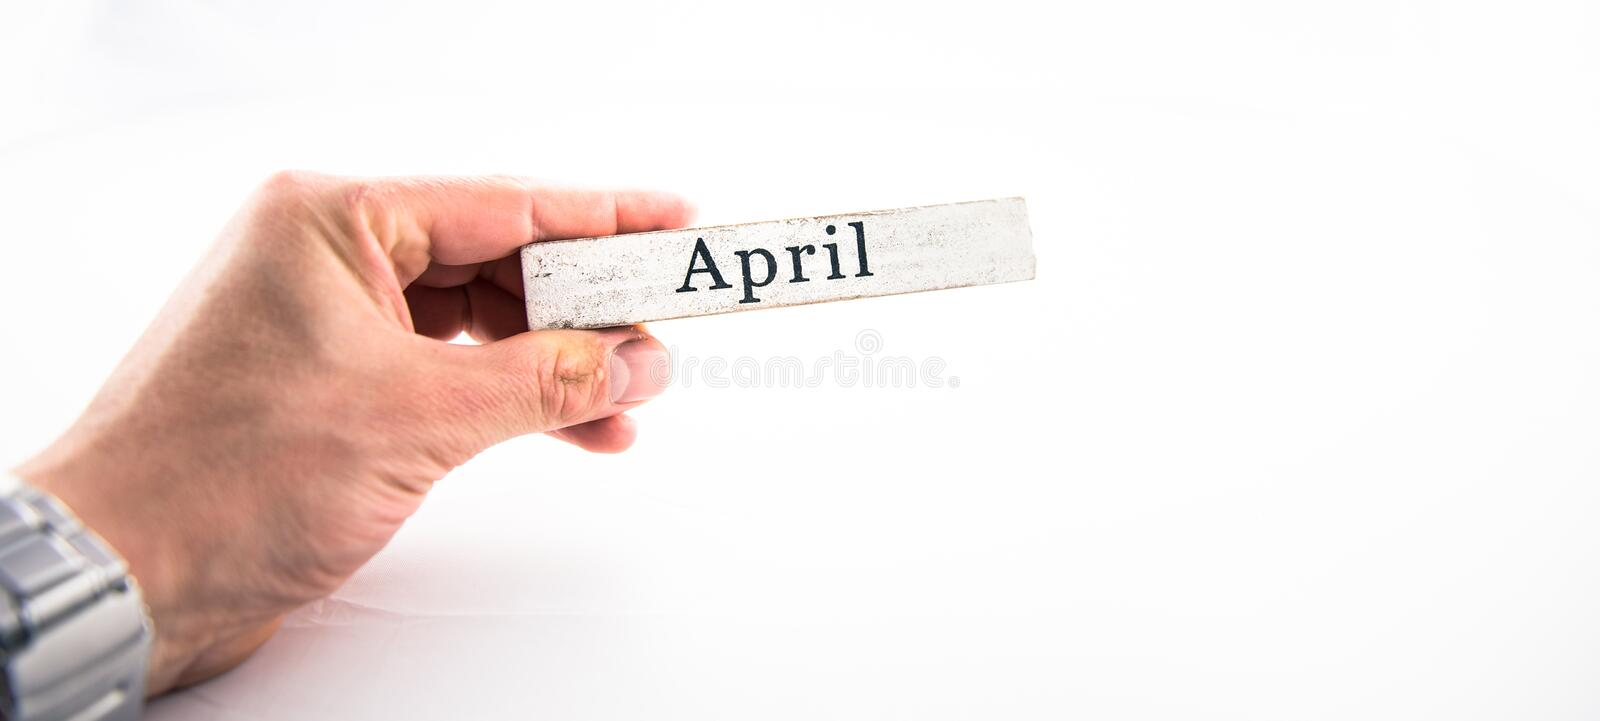 April - A hand holding calendar month block on white background royalty free stock images